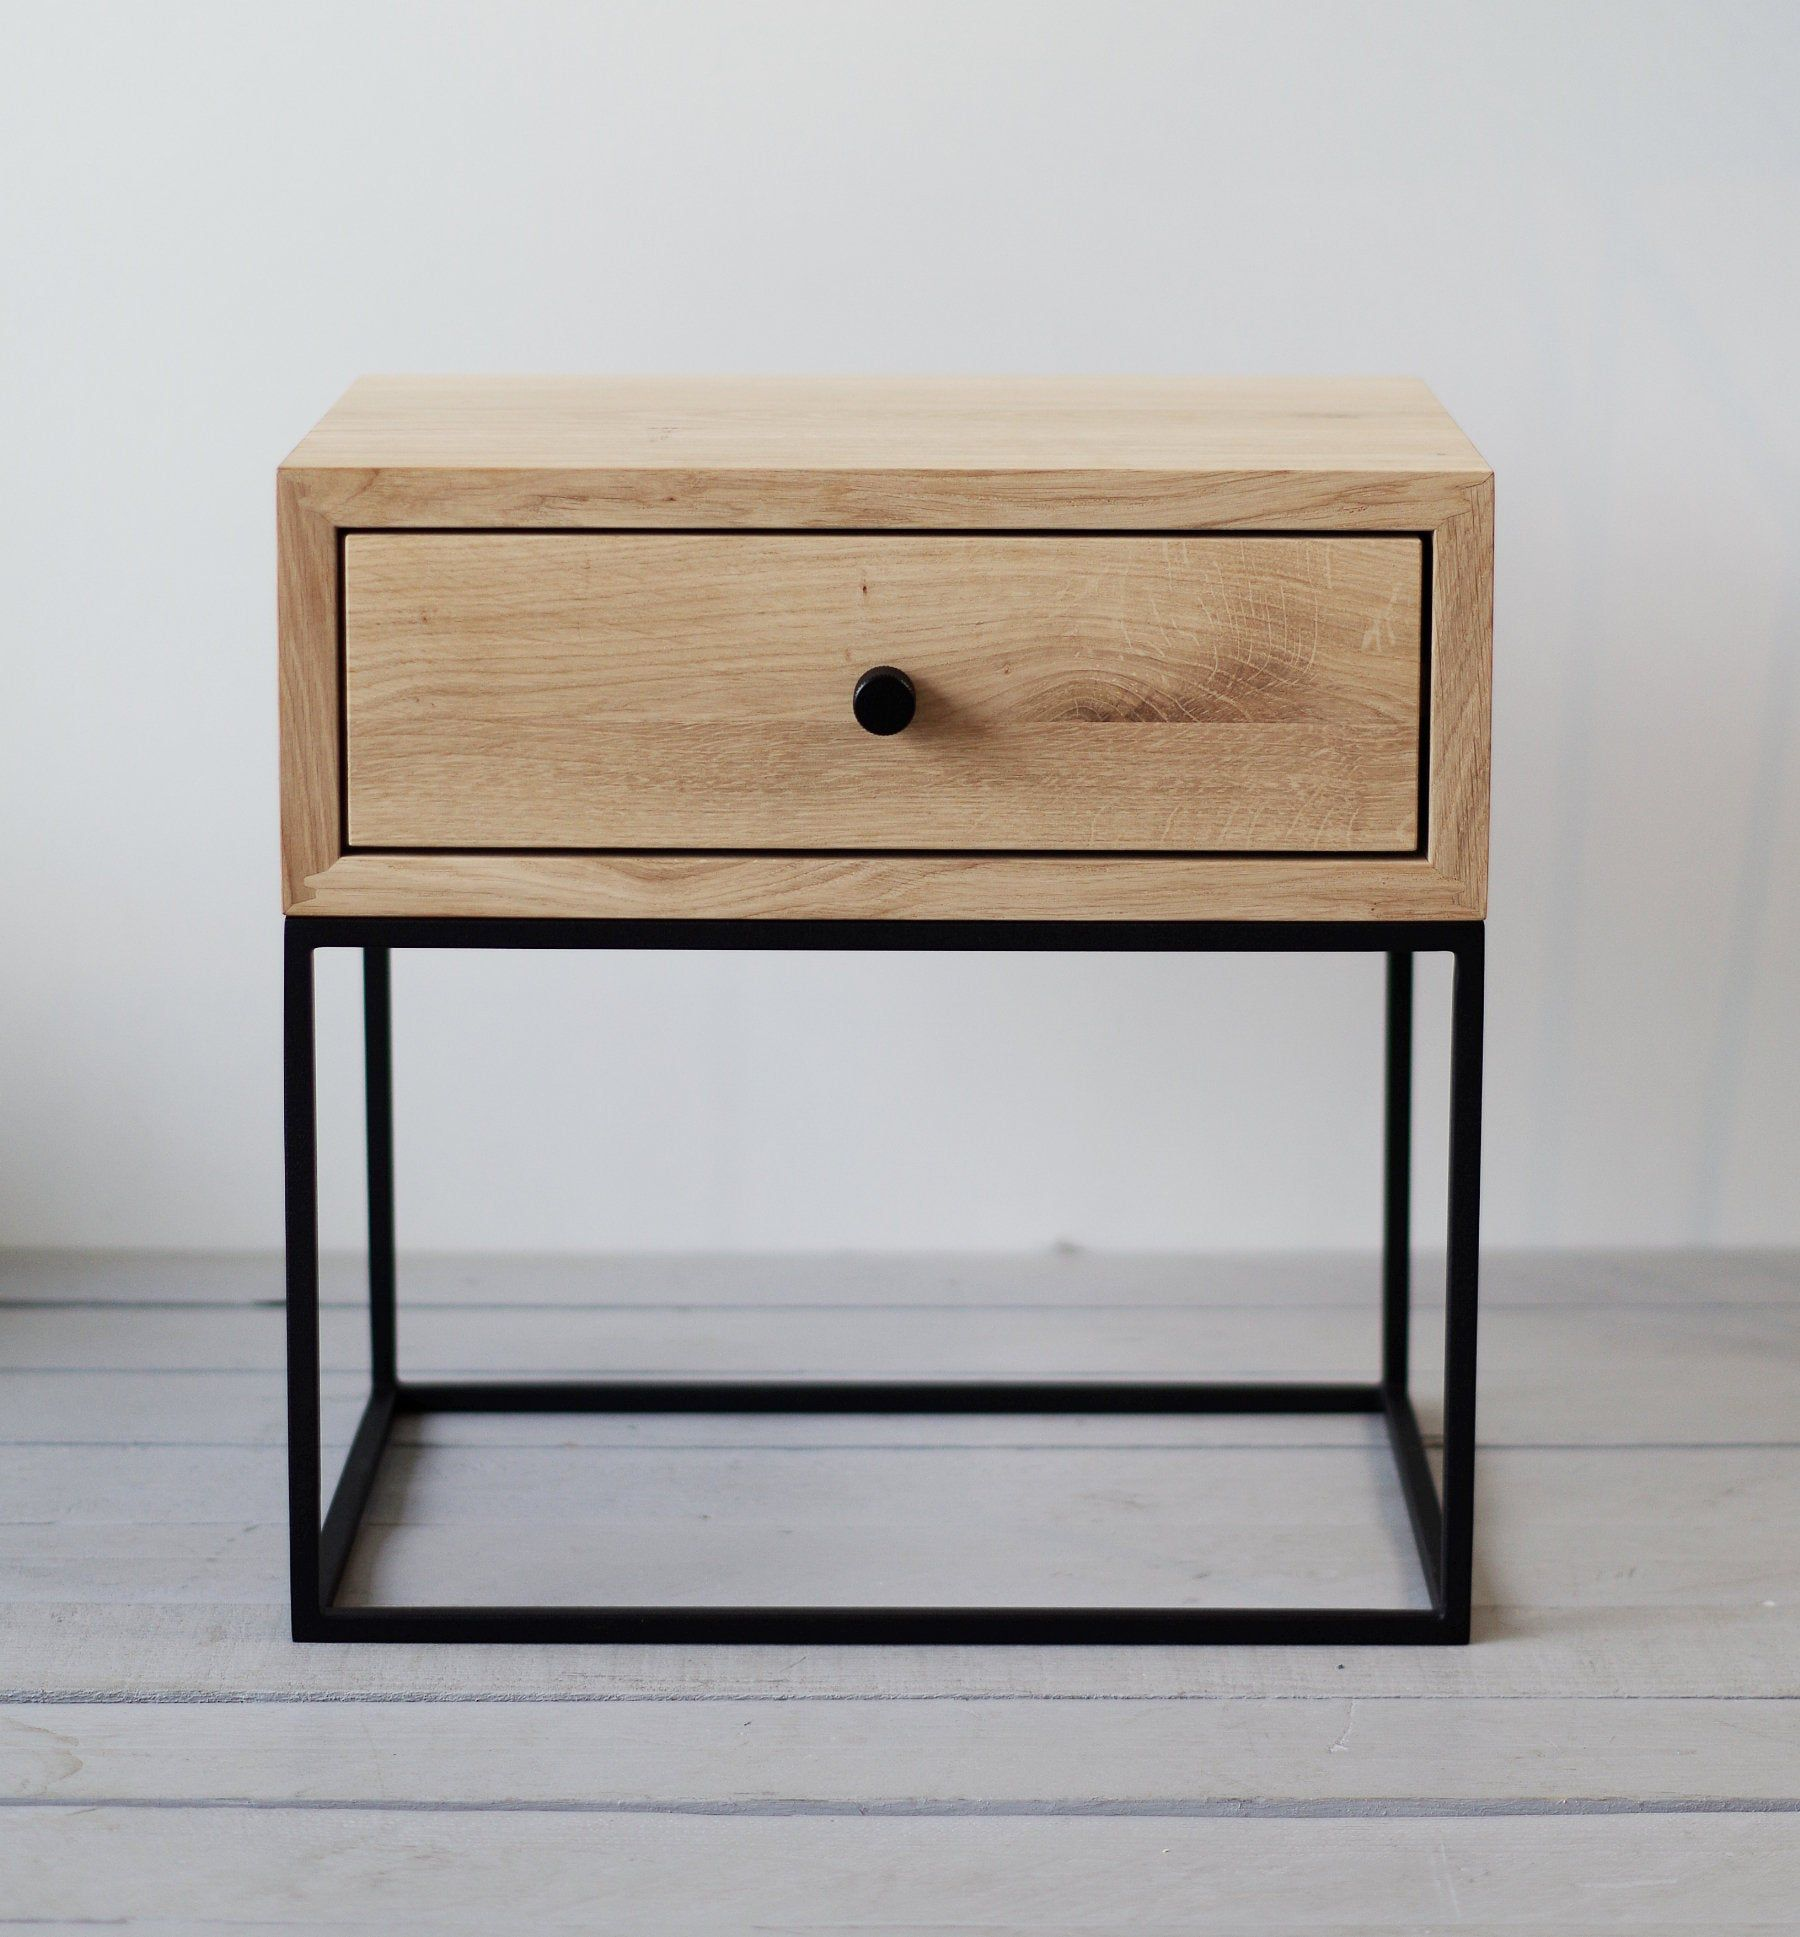 Industrial Nightstand Mid Century Industrial Style Solid Oak Wood And Black Finish Metal Legs Bedside Table Metal Wooden Bedside Table Wood Bedside Table